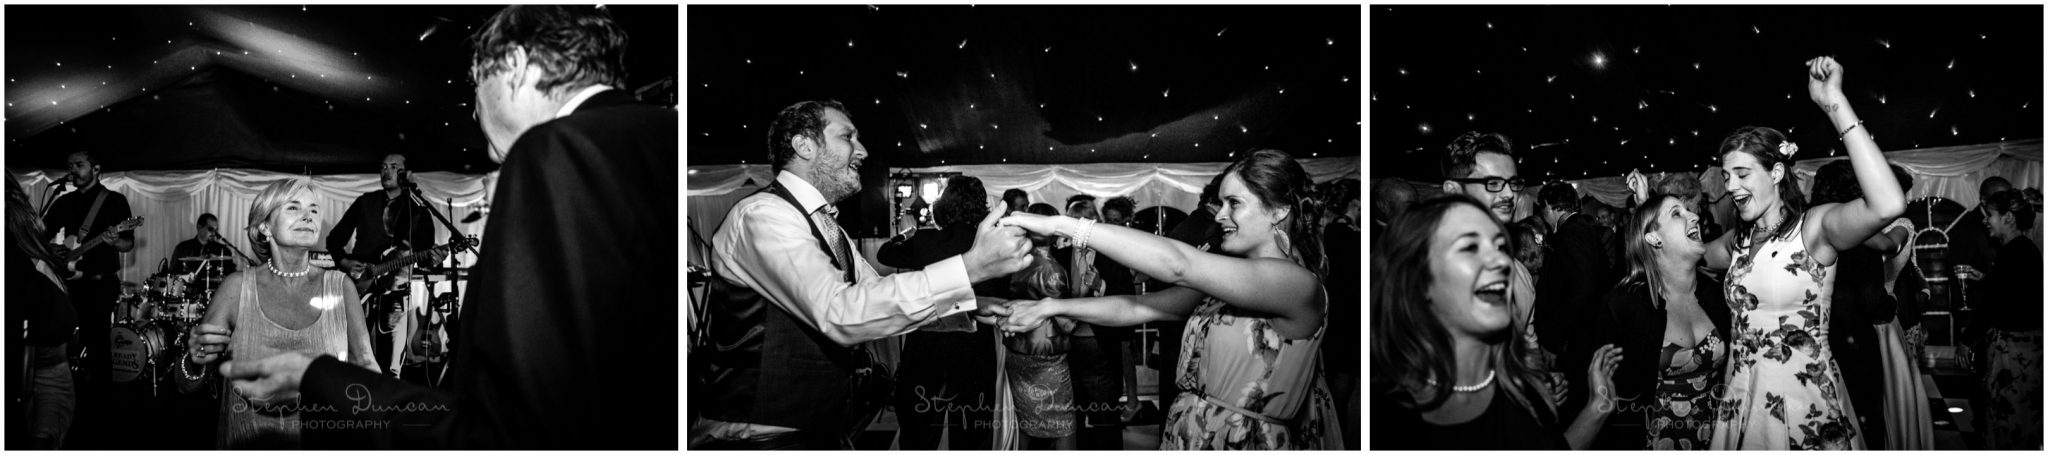 Lymington wedding photography guests on dancefloor